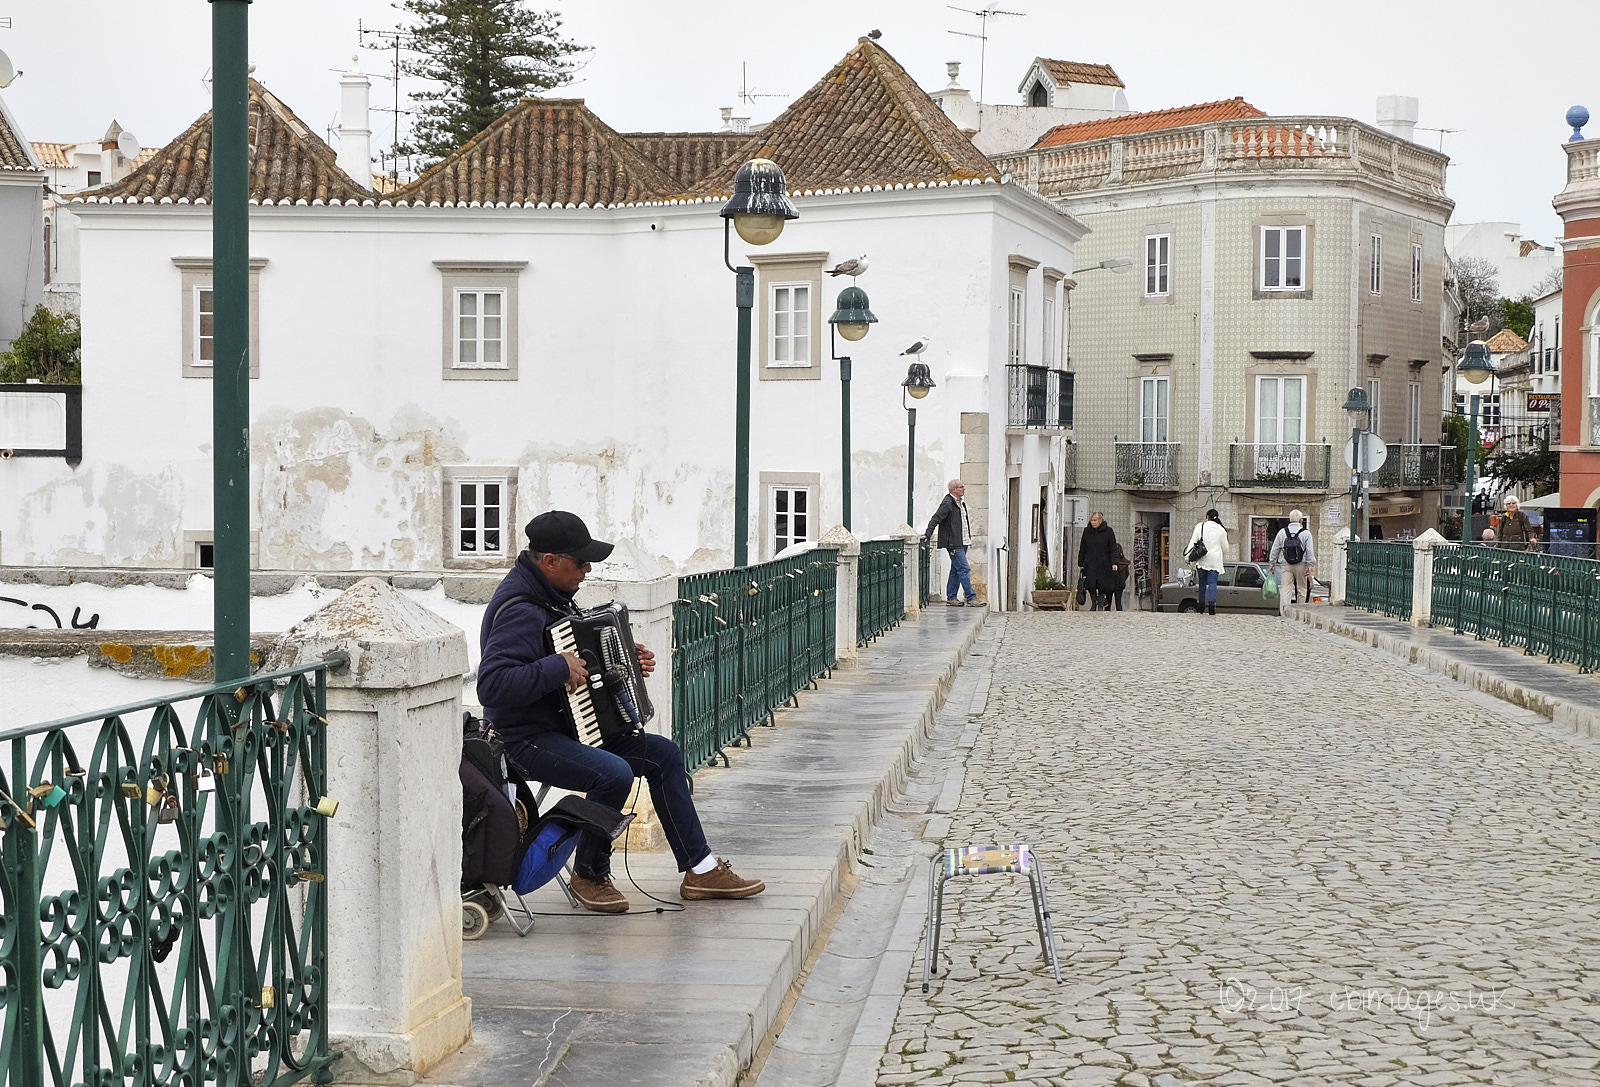 An accordion player on the Roman bridge in Tavira, Portugal